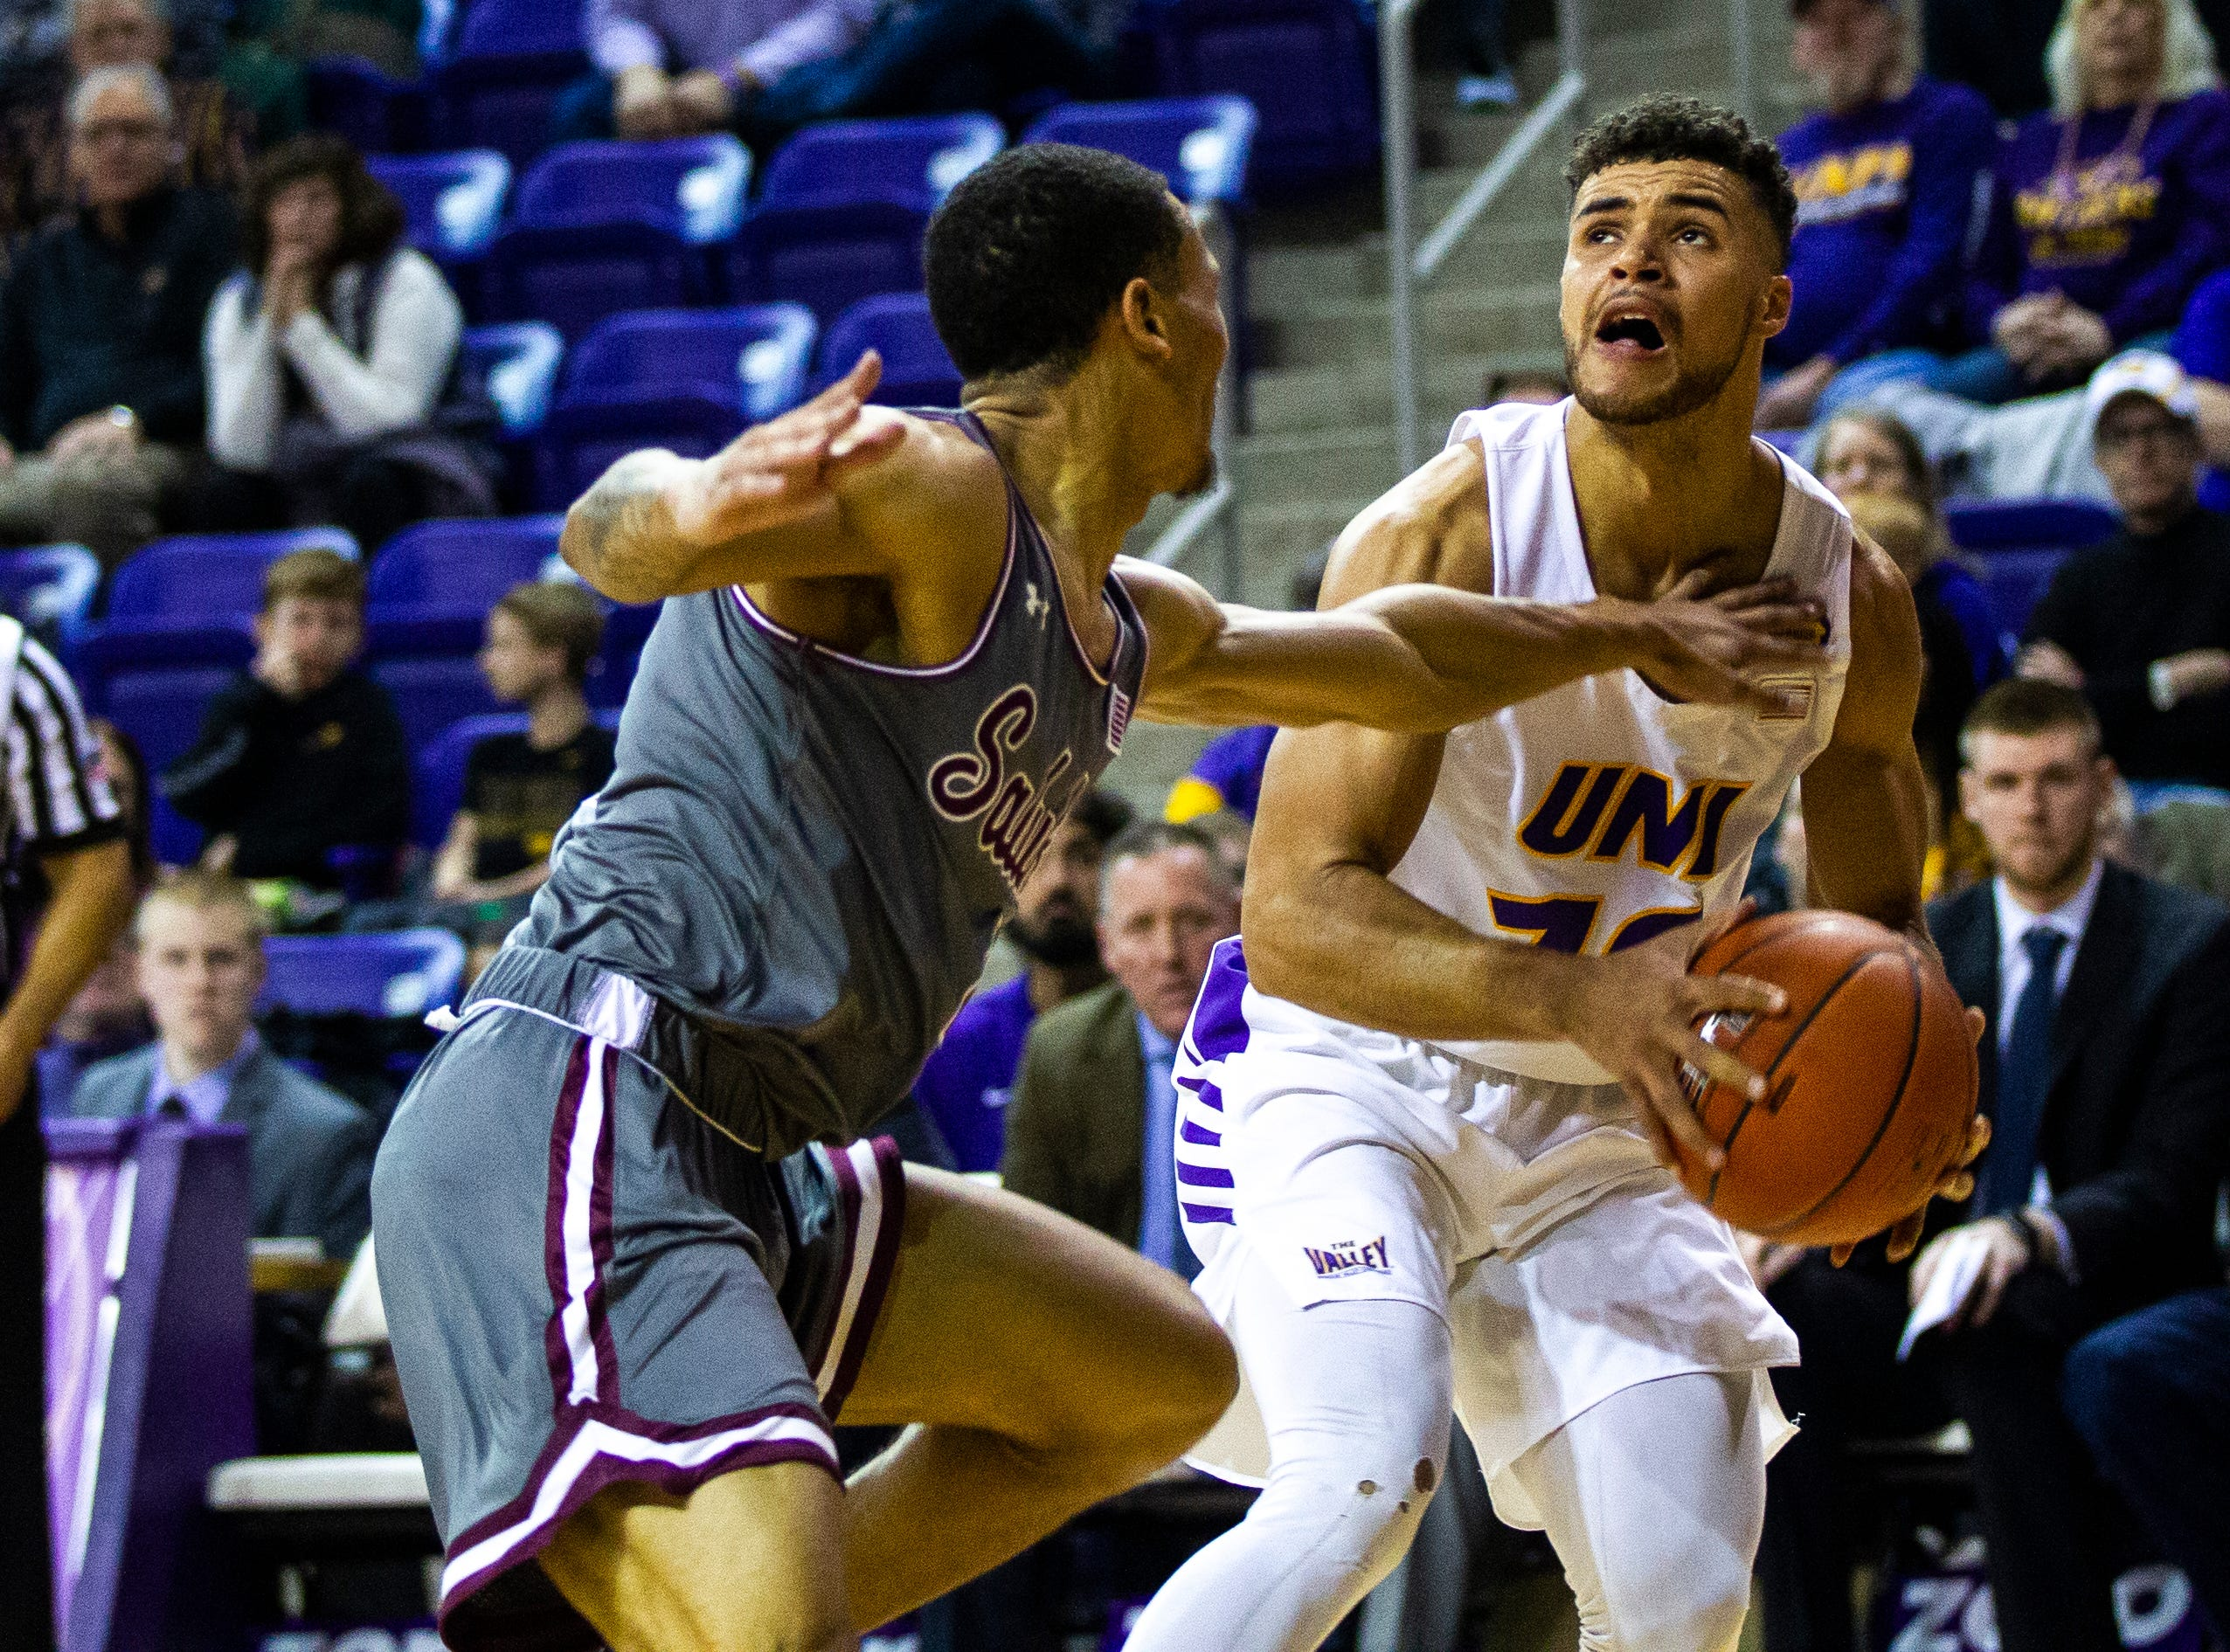 Northern Iowa guard Miles Wentzien (10) gets fouled by Southern Illinois guard Eric McGill (4) during a NCAA Missouri Valley Conference men's basketball game on Saturday, Jan. 5, 2019, at the McLeod Center in Cedar Falls, Iowa.